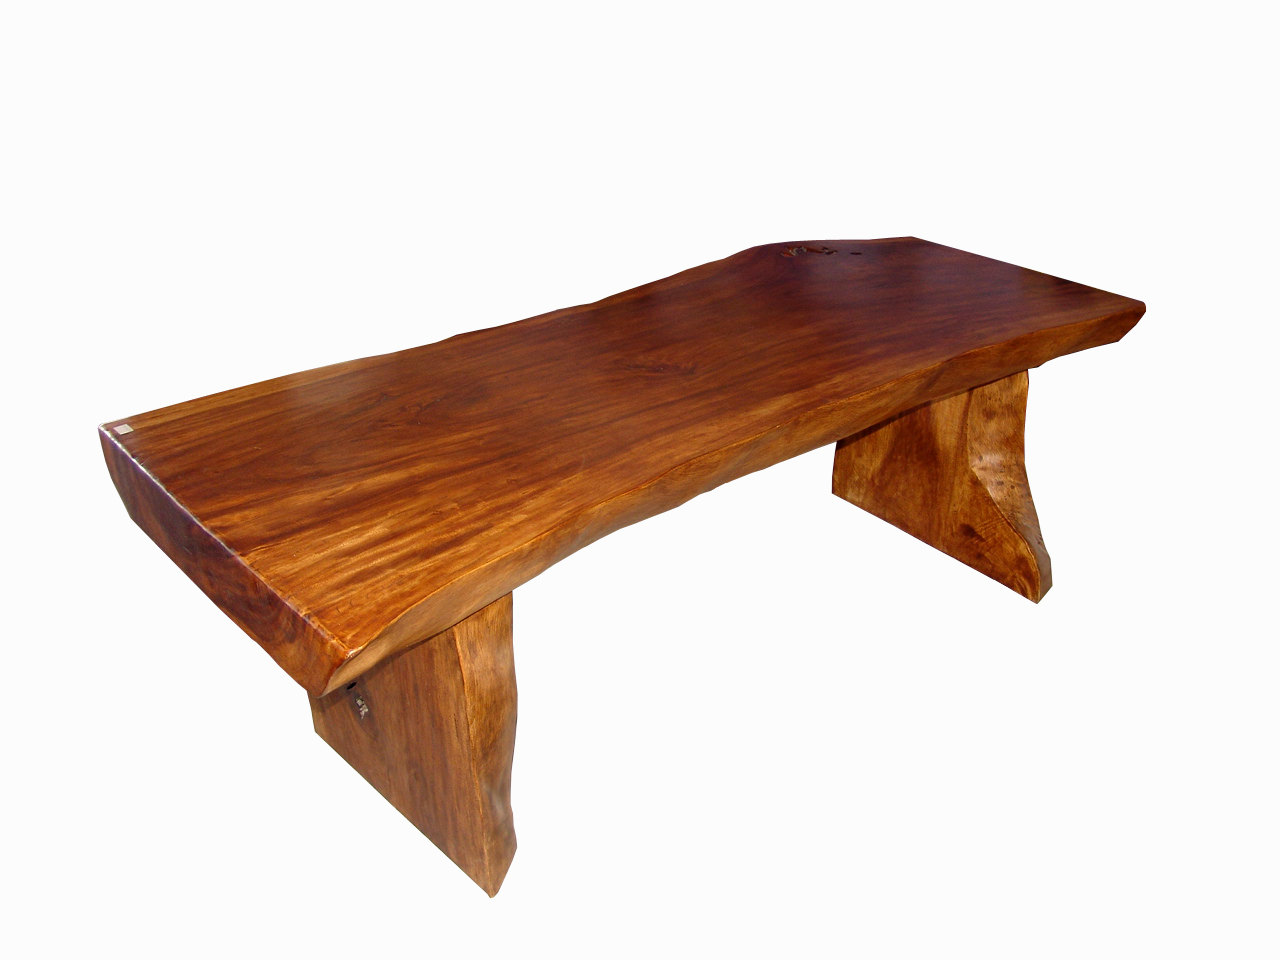 Slab Table With Natural Edges